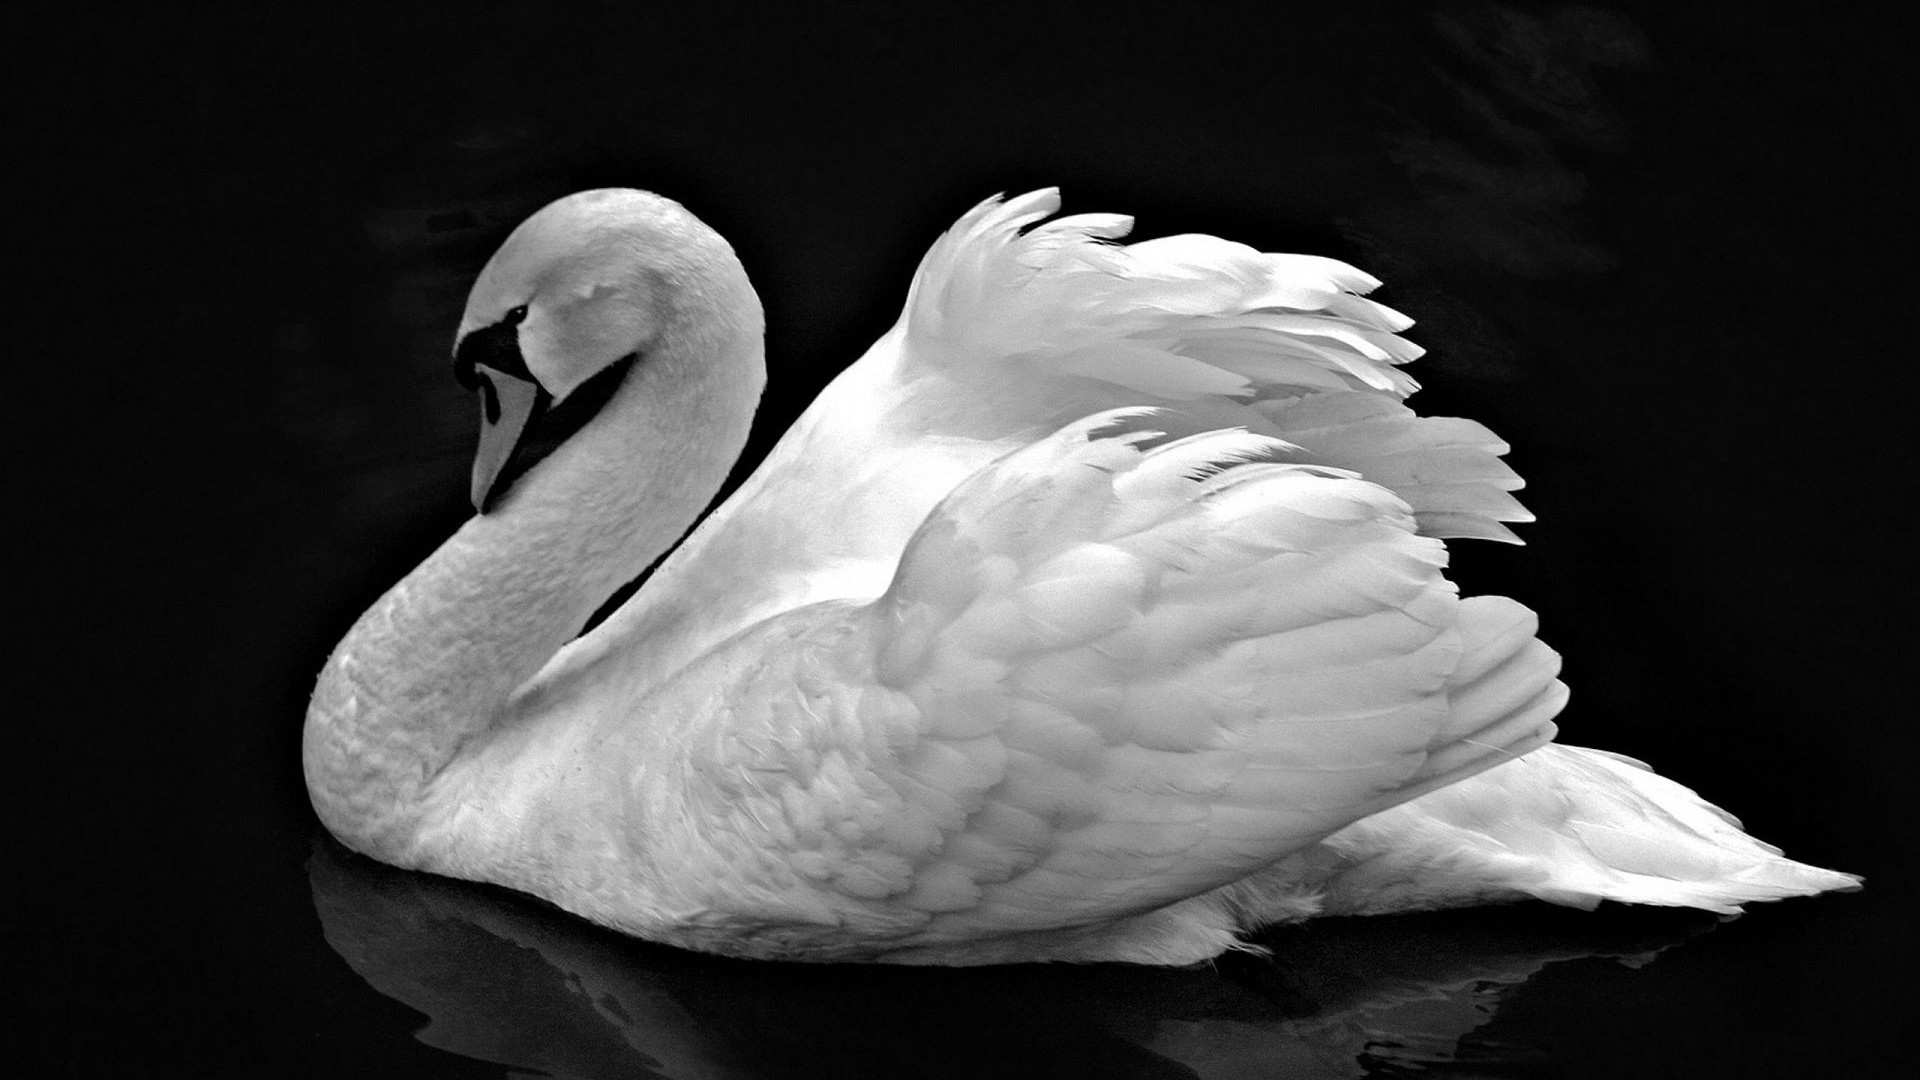 White Swan Photo Wallpaper #155149 - Resolution 1920x1080 px